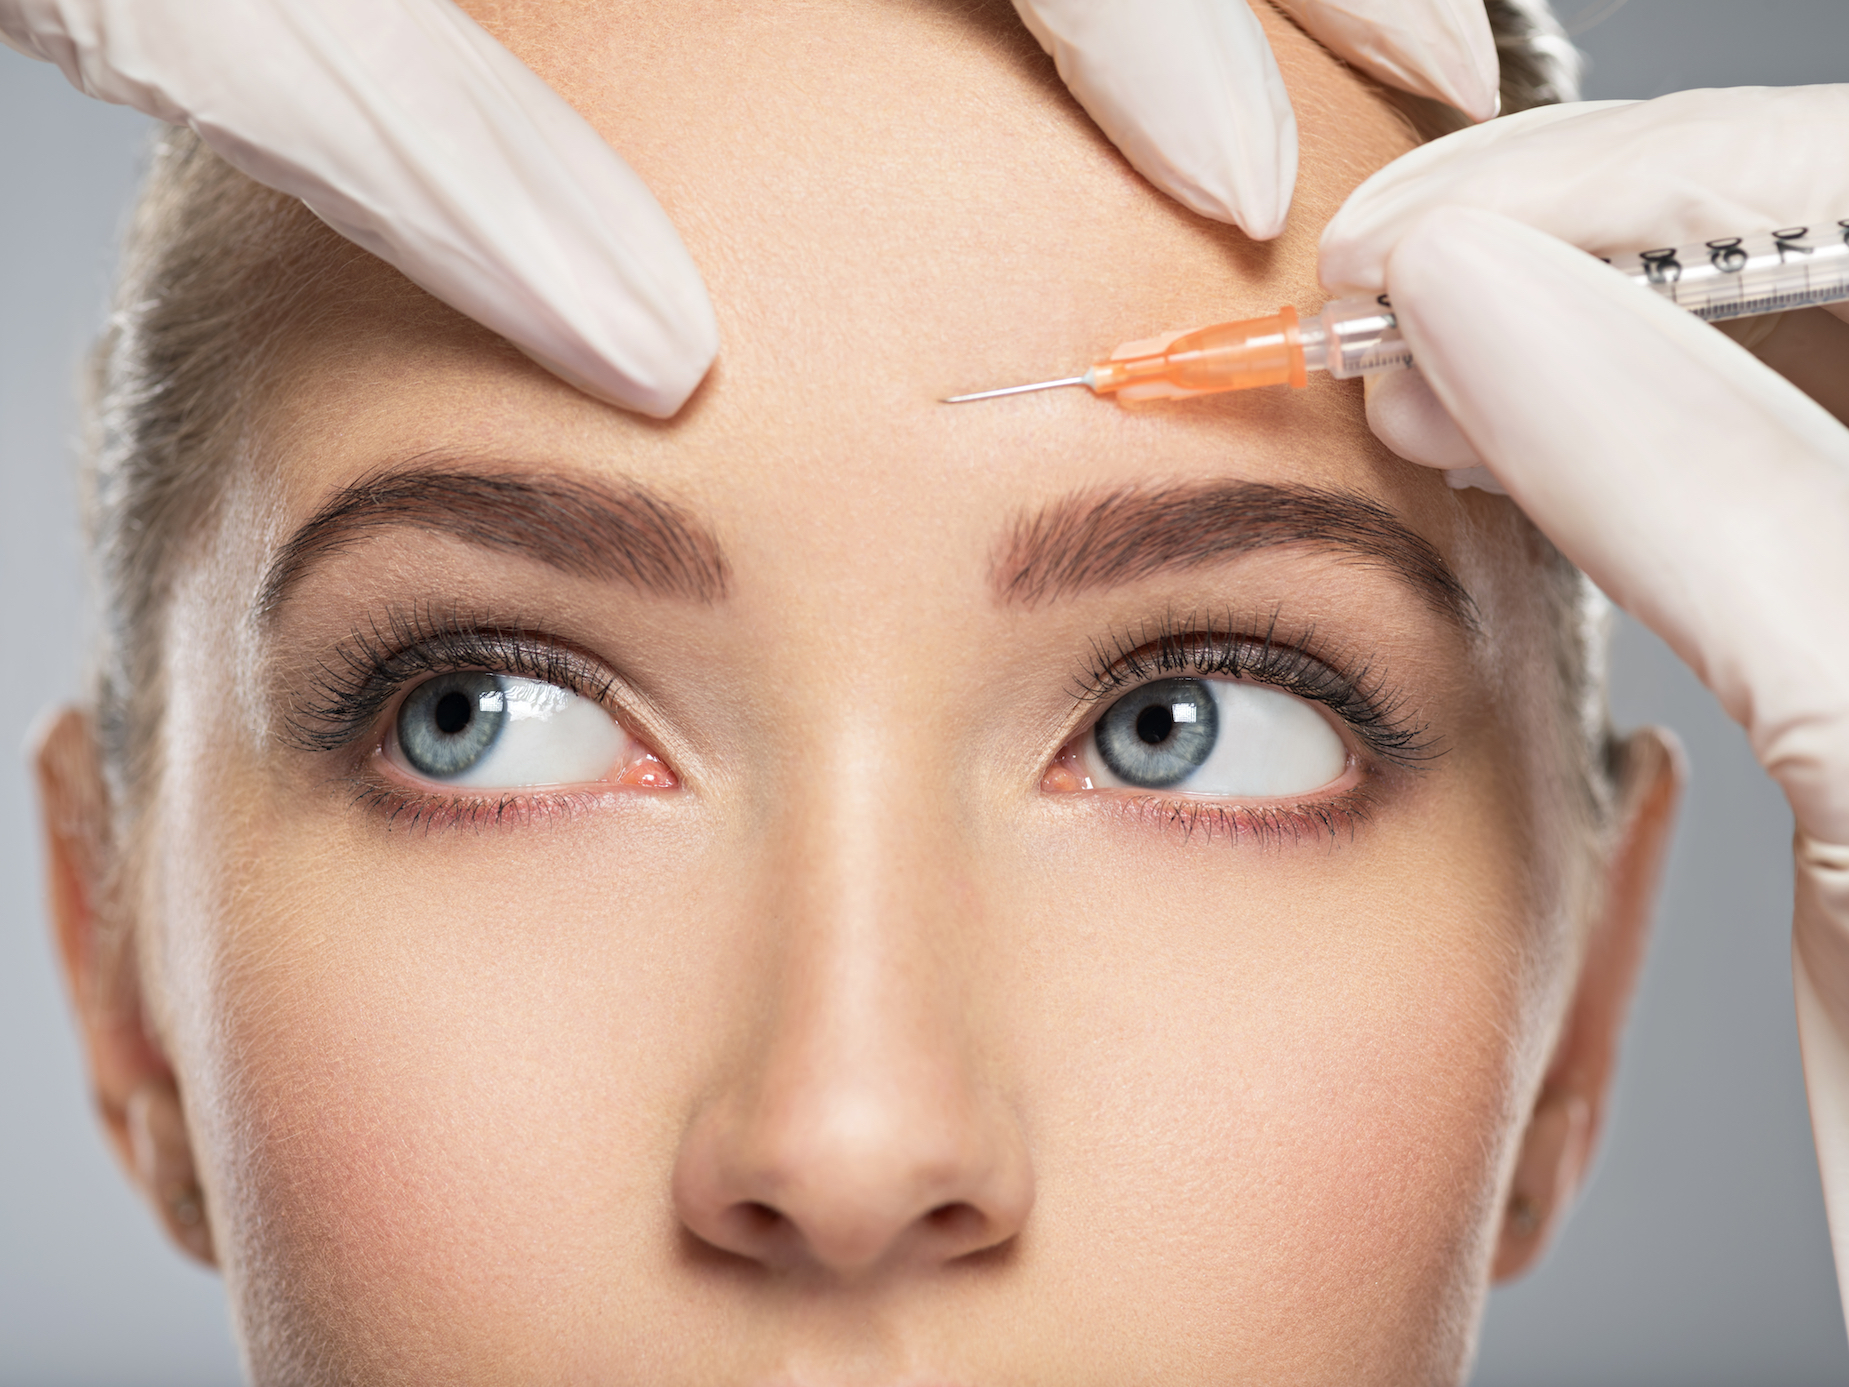 Facial exercise can help Botox effects kick in 24 hours sooner • Earth.com